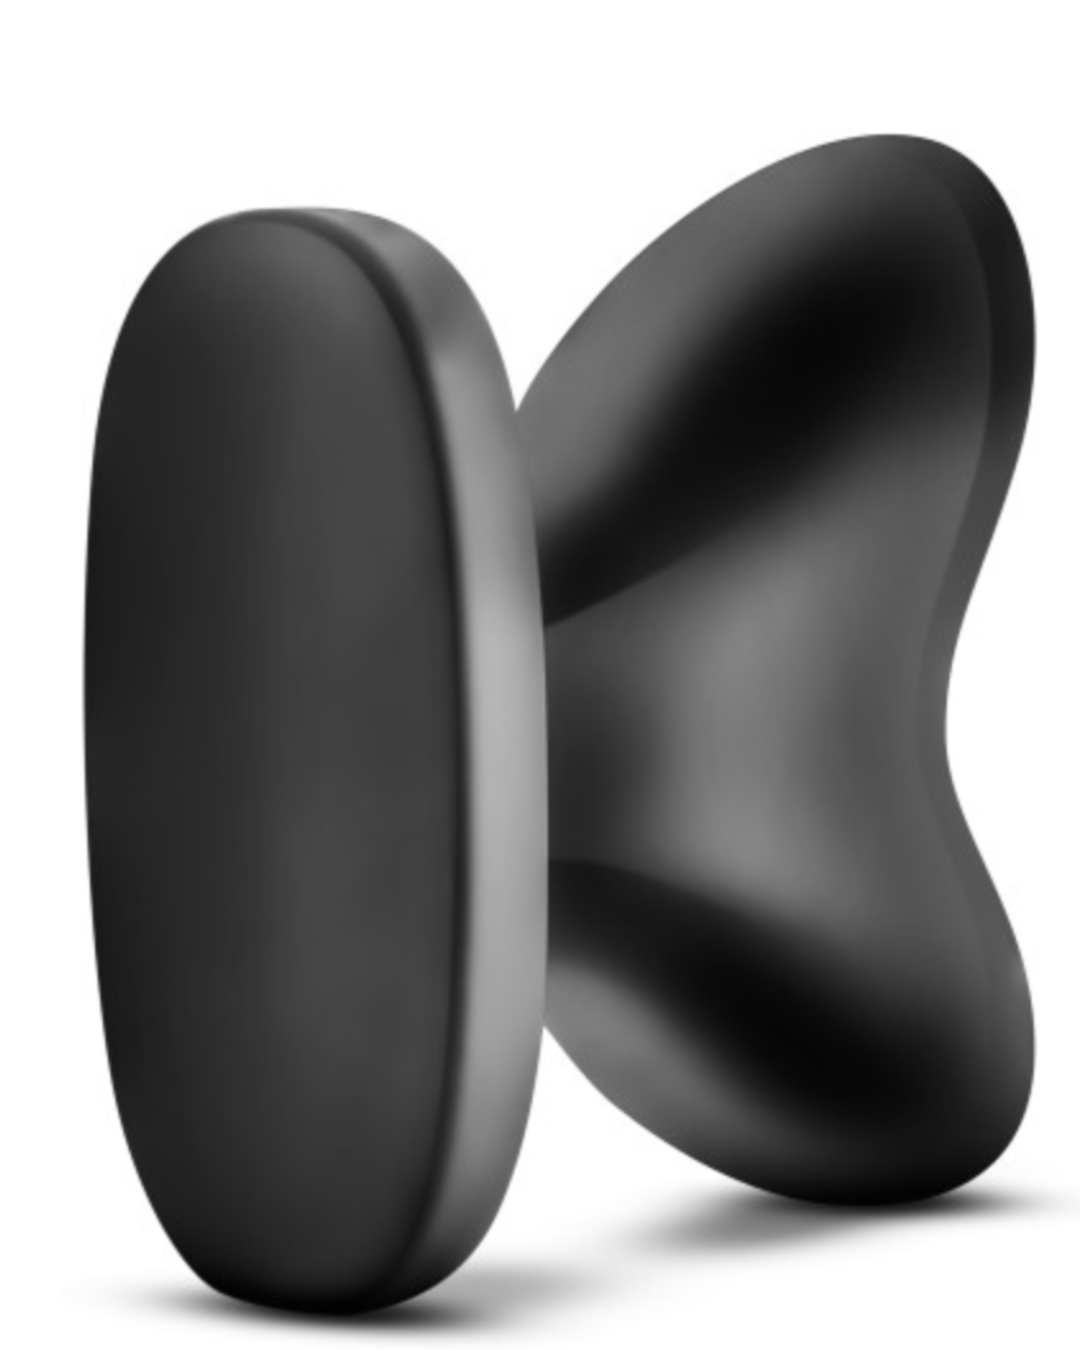 Anal Adventures Anal Anchor Plug by Blush Novelties Base